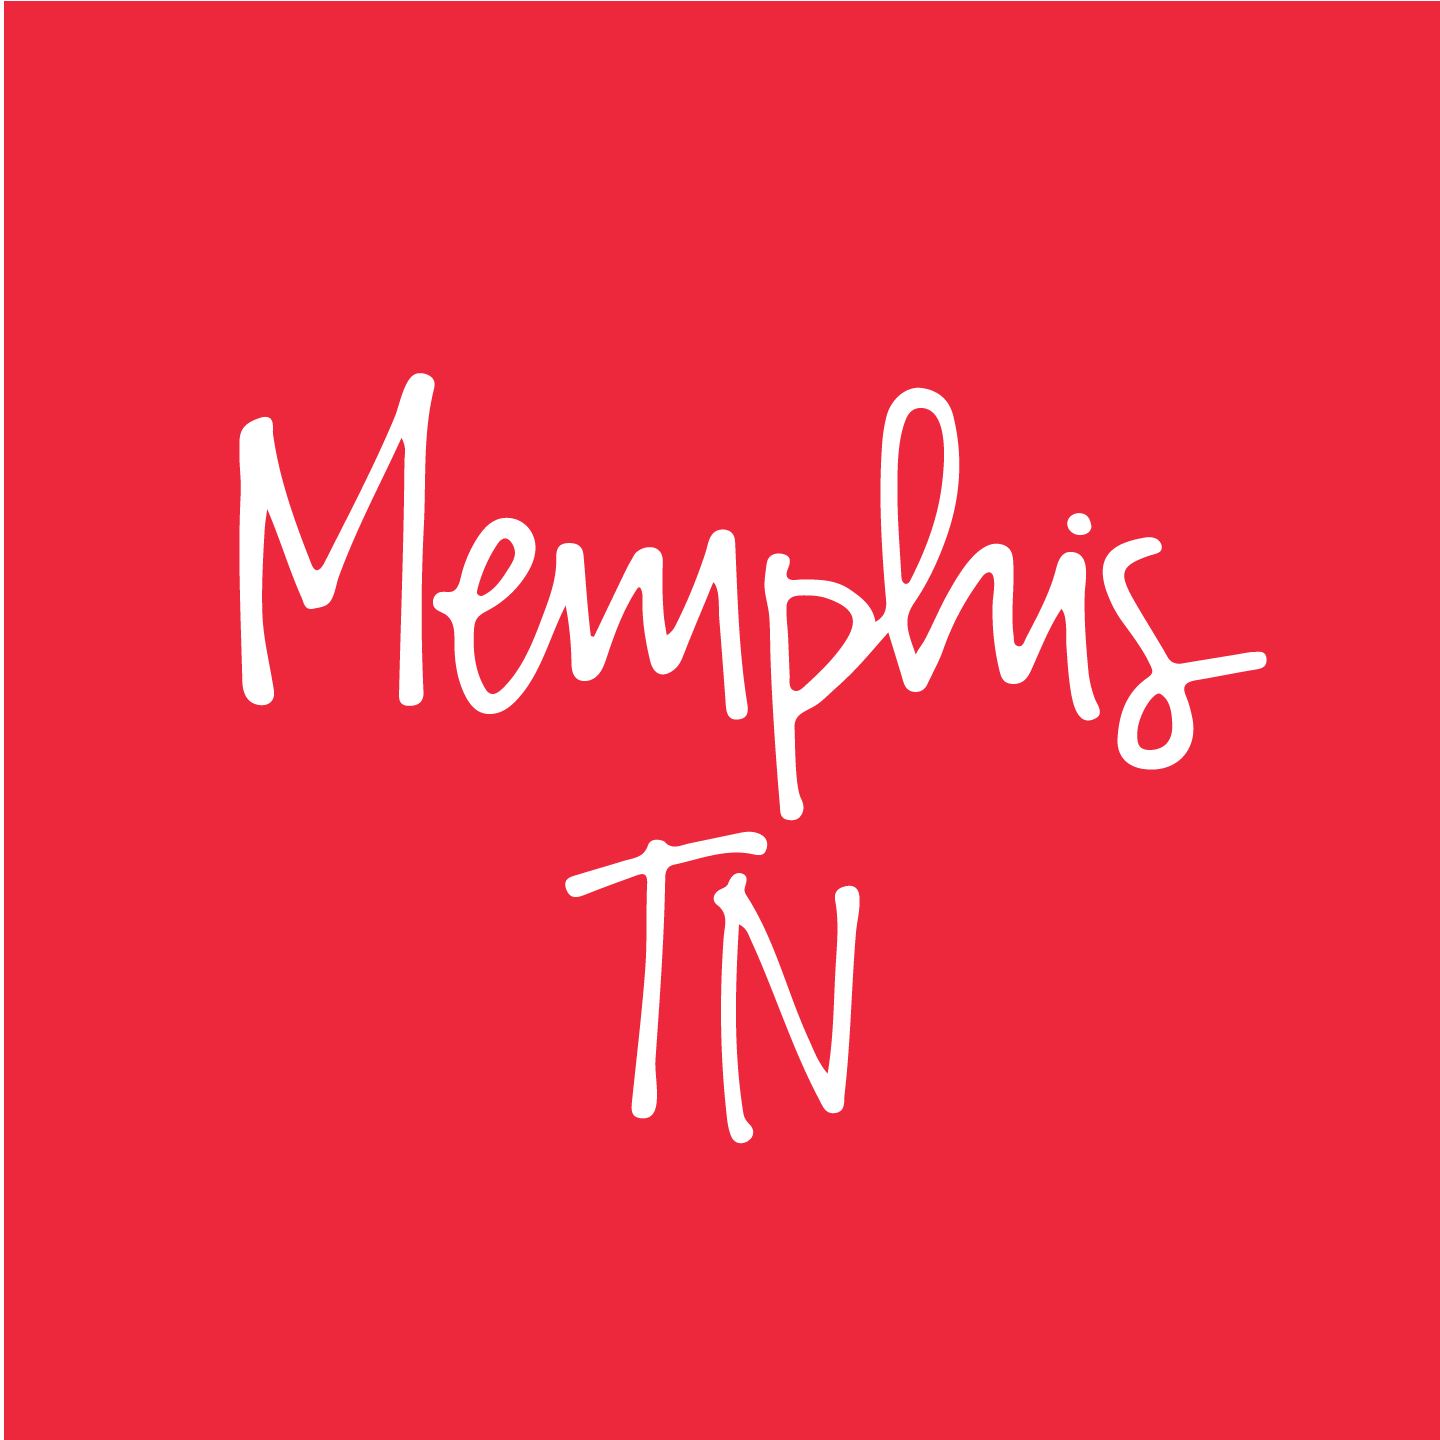 Memphis, TN Mobile Tour Stop - September 10 – October 9, 2019